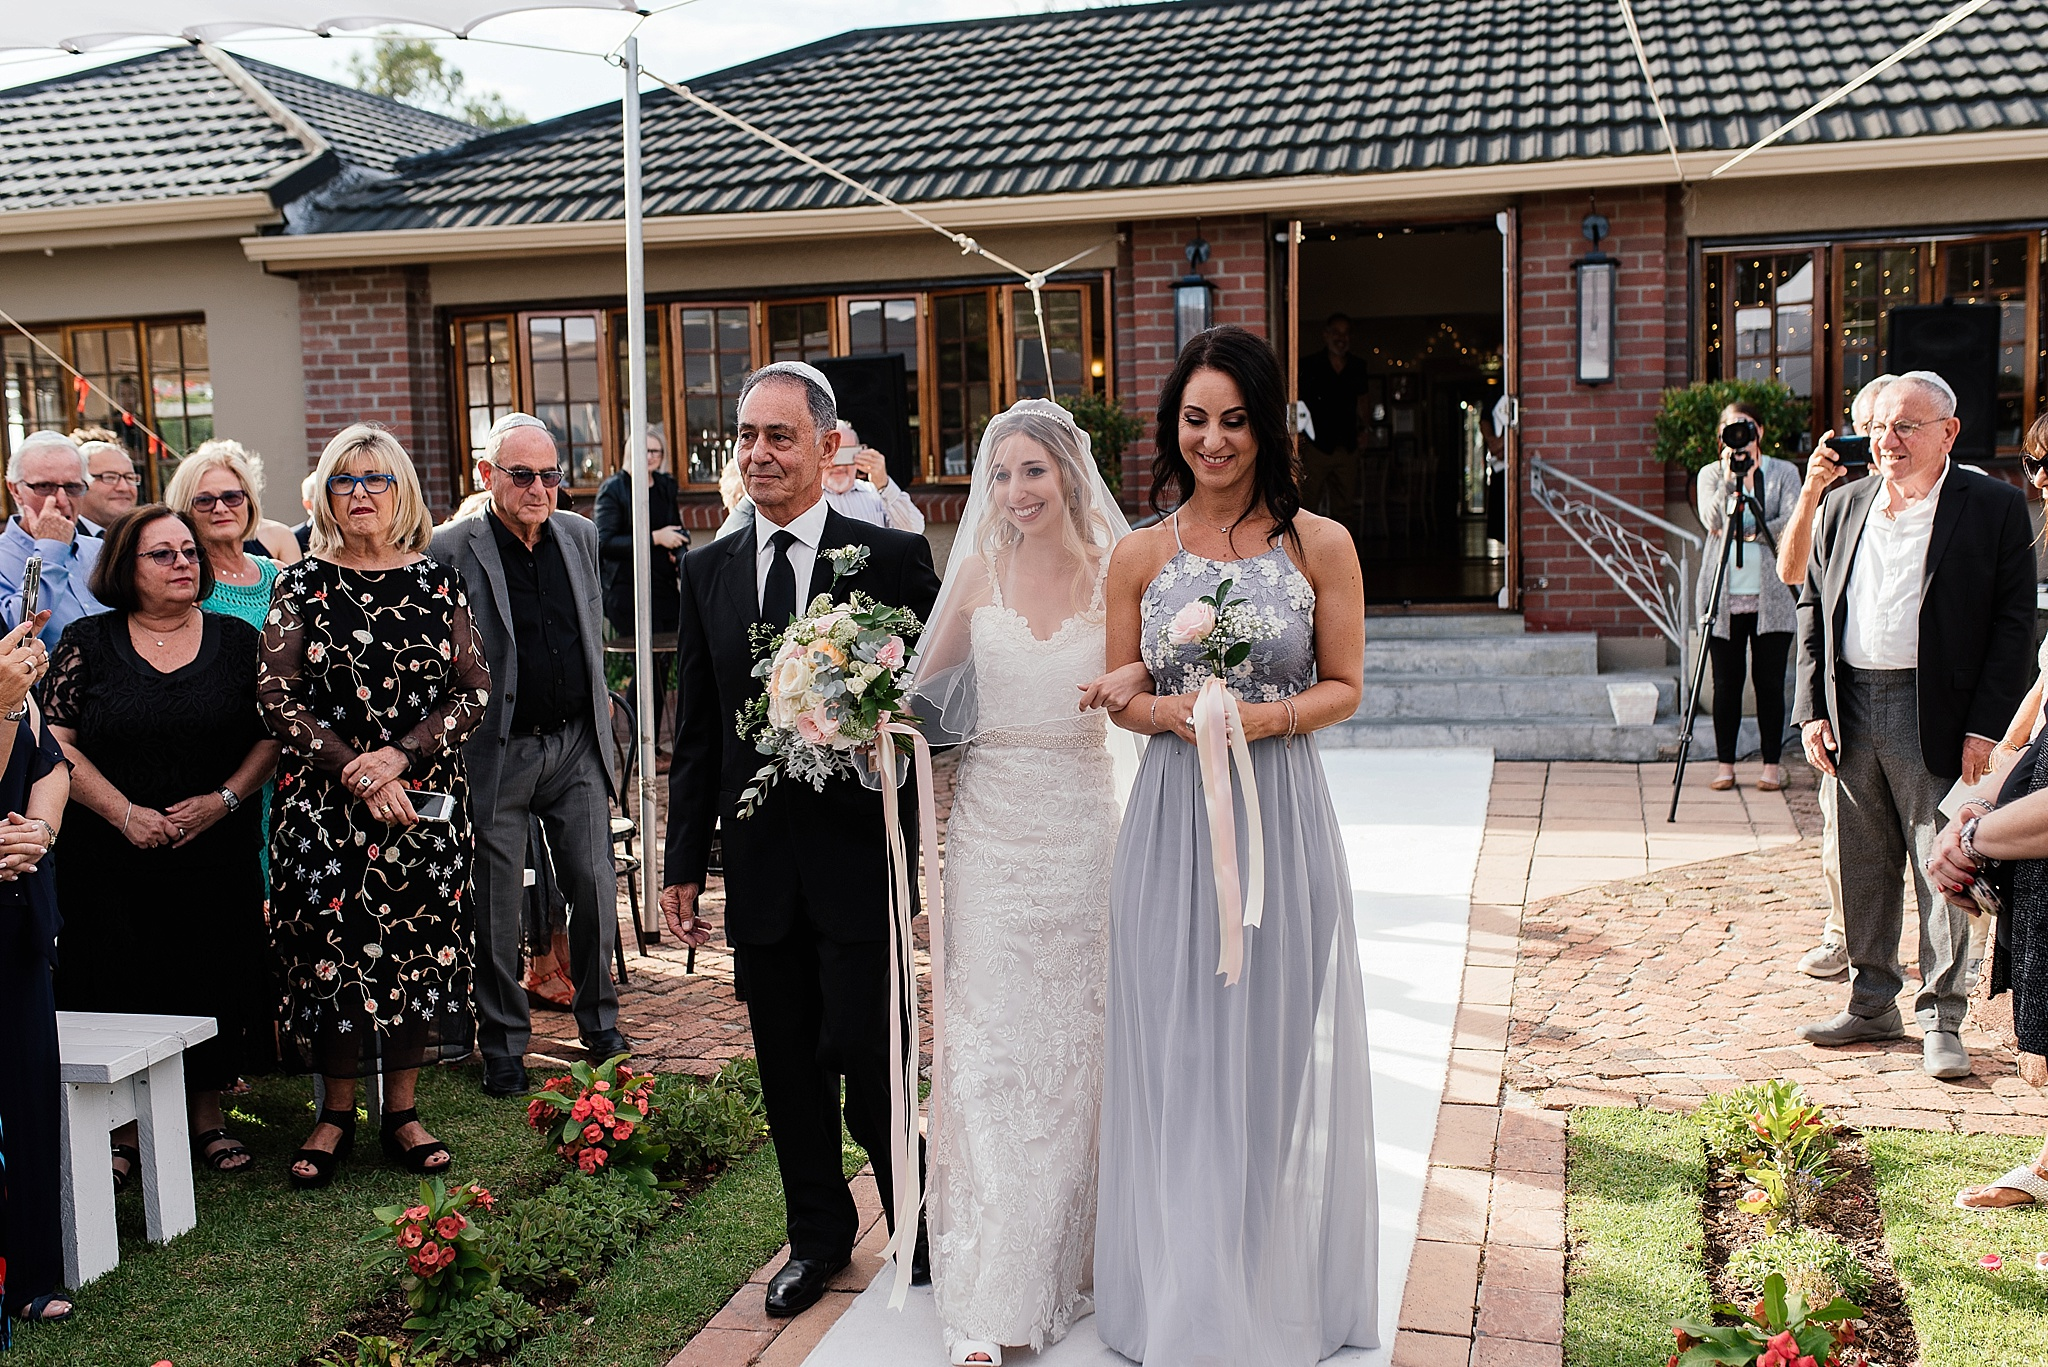 Cape Town Wedding Photographer Darren Bester - SuikerBossie - Stephen and Mikaela_0026.jpg